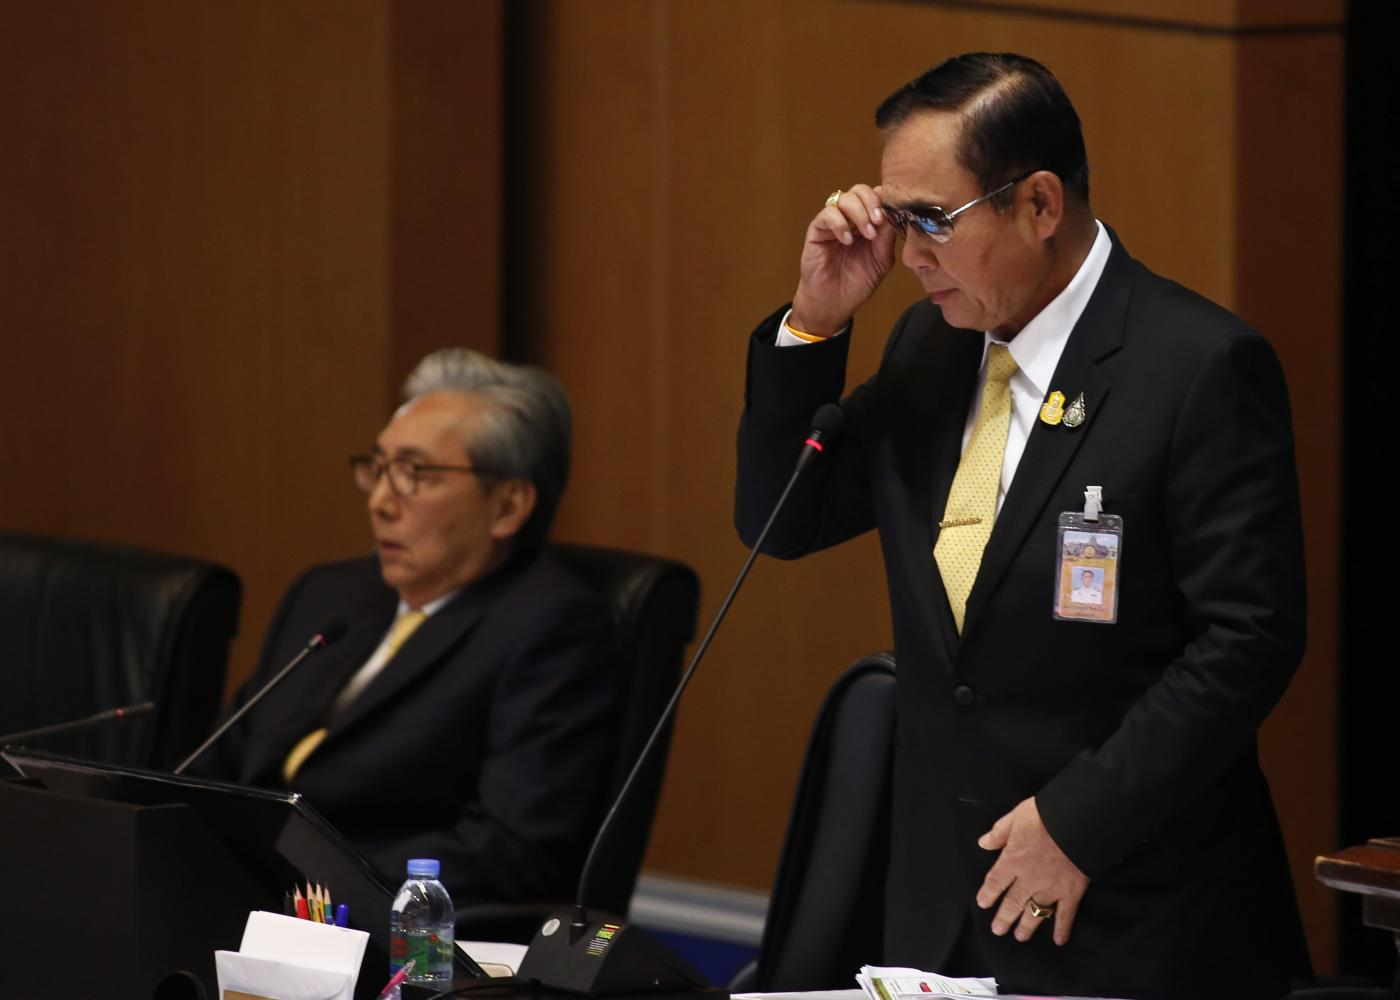 Prime Minister Prayut Chan-o-cha, right, speaks during the government policy debate in parliament last week. His government's manifesto does not address life-threatening problems faced by the Thai economy, says Bangkok Post columnist Chartchai Parasuk. PATTARAPONG CHATPATTARASILL